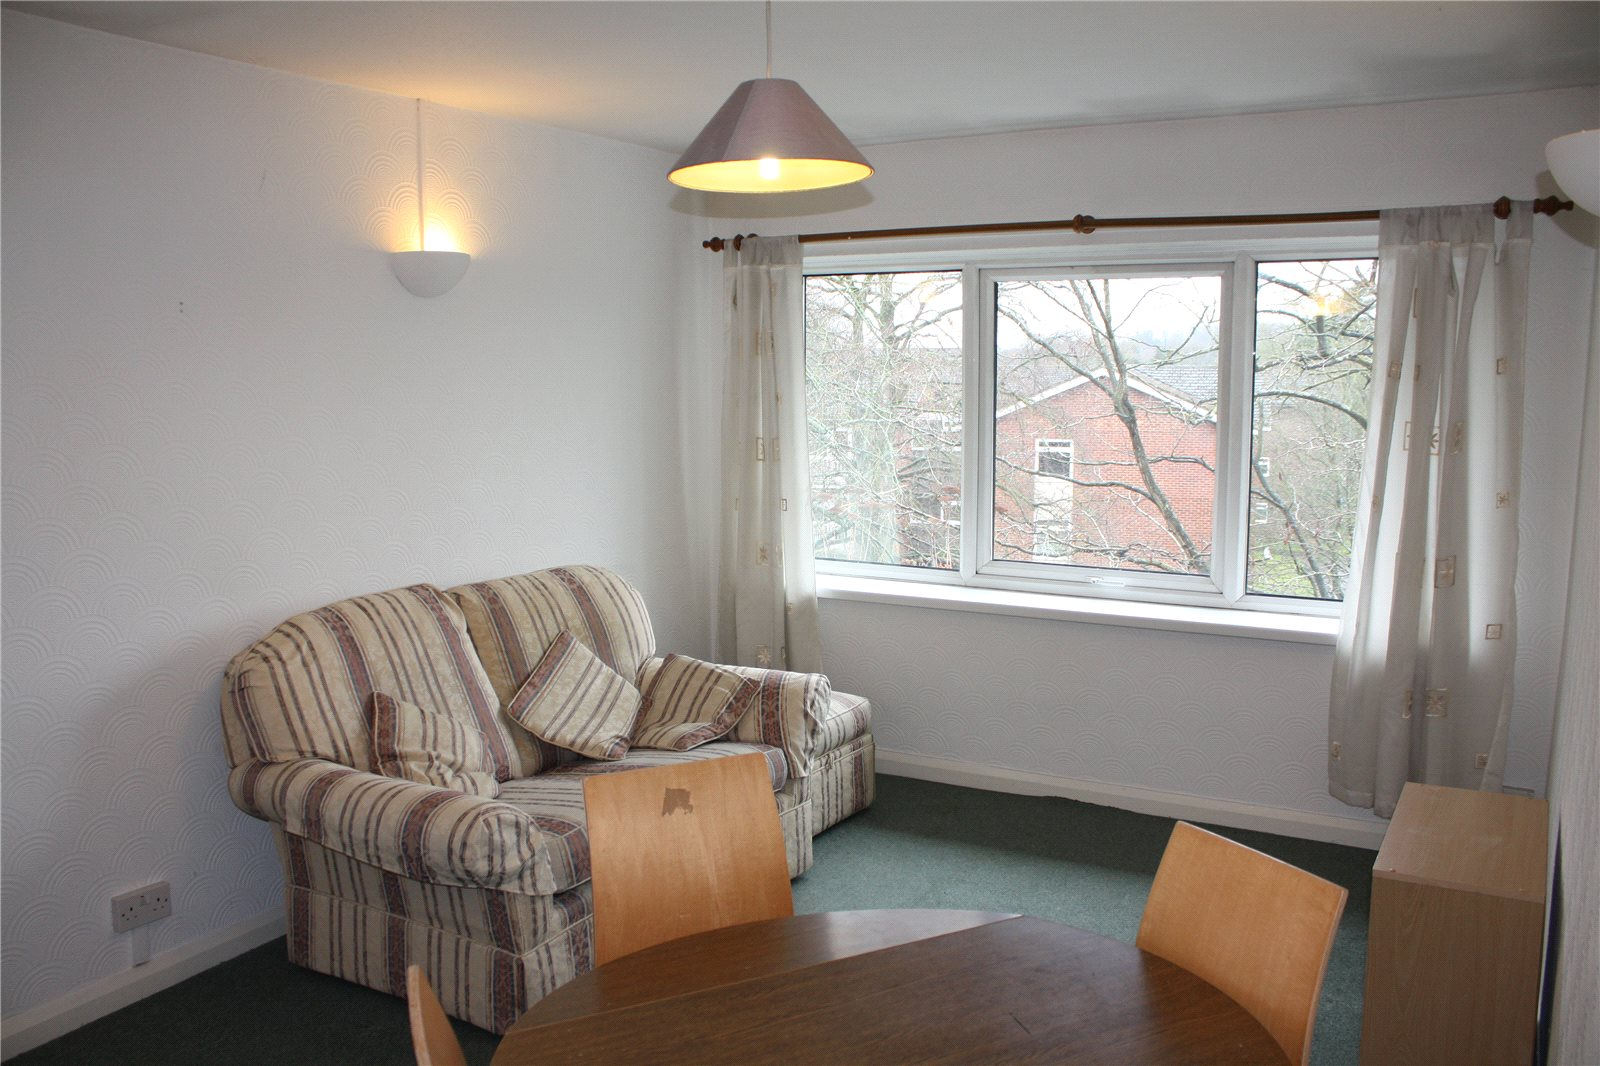 Parkers reading 1 bedroom flat to rent in beta house - 1 bedroom house to rent in reading ...